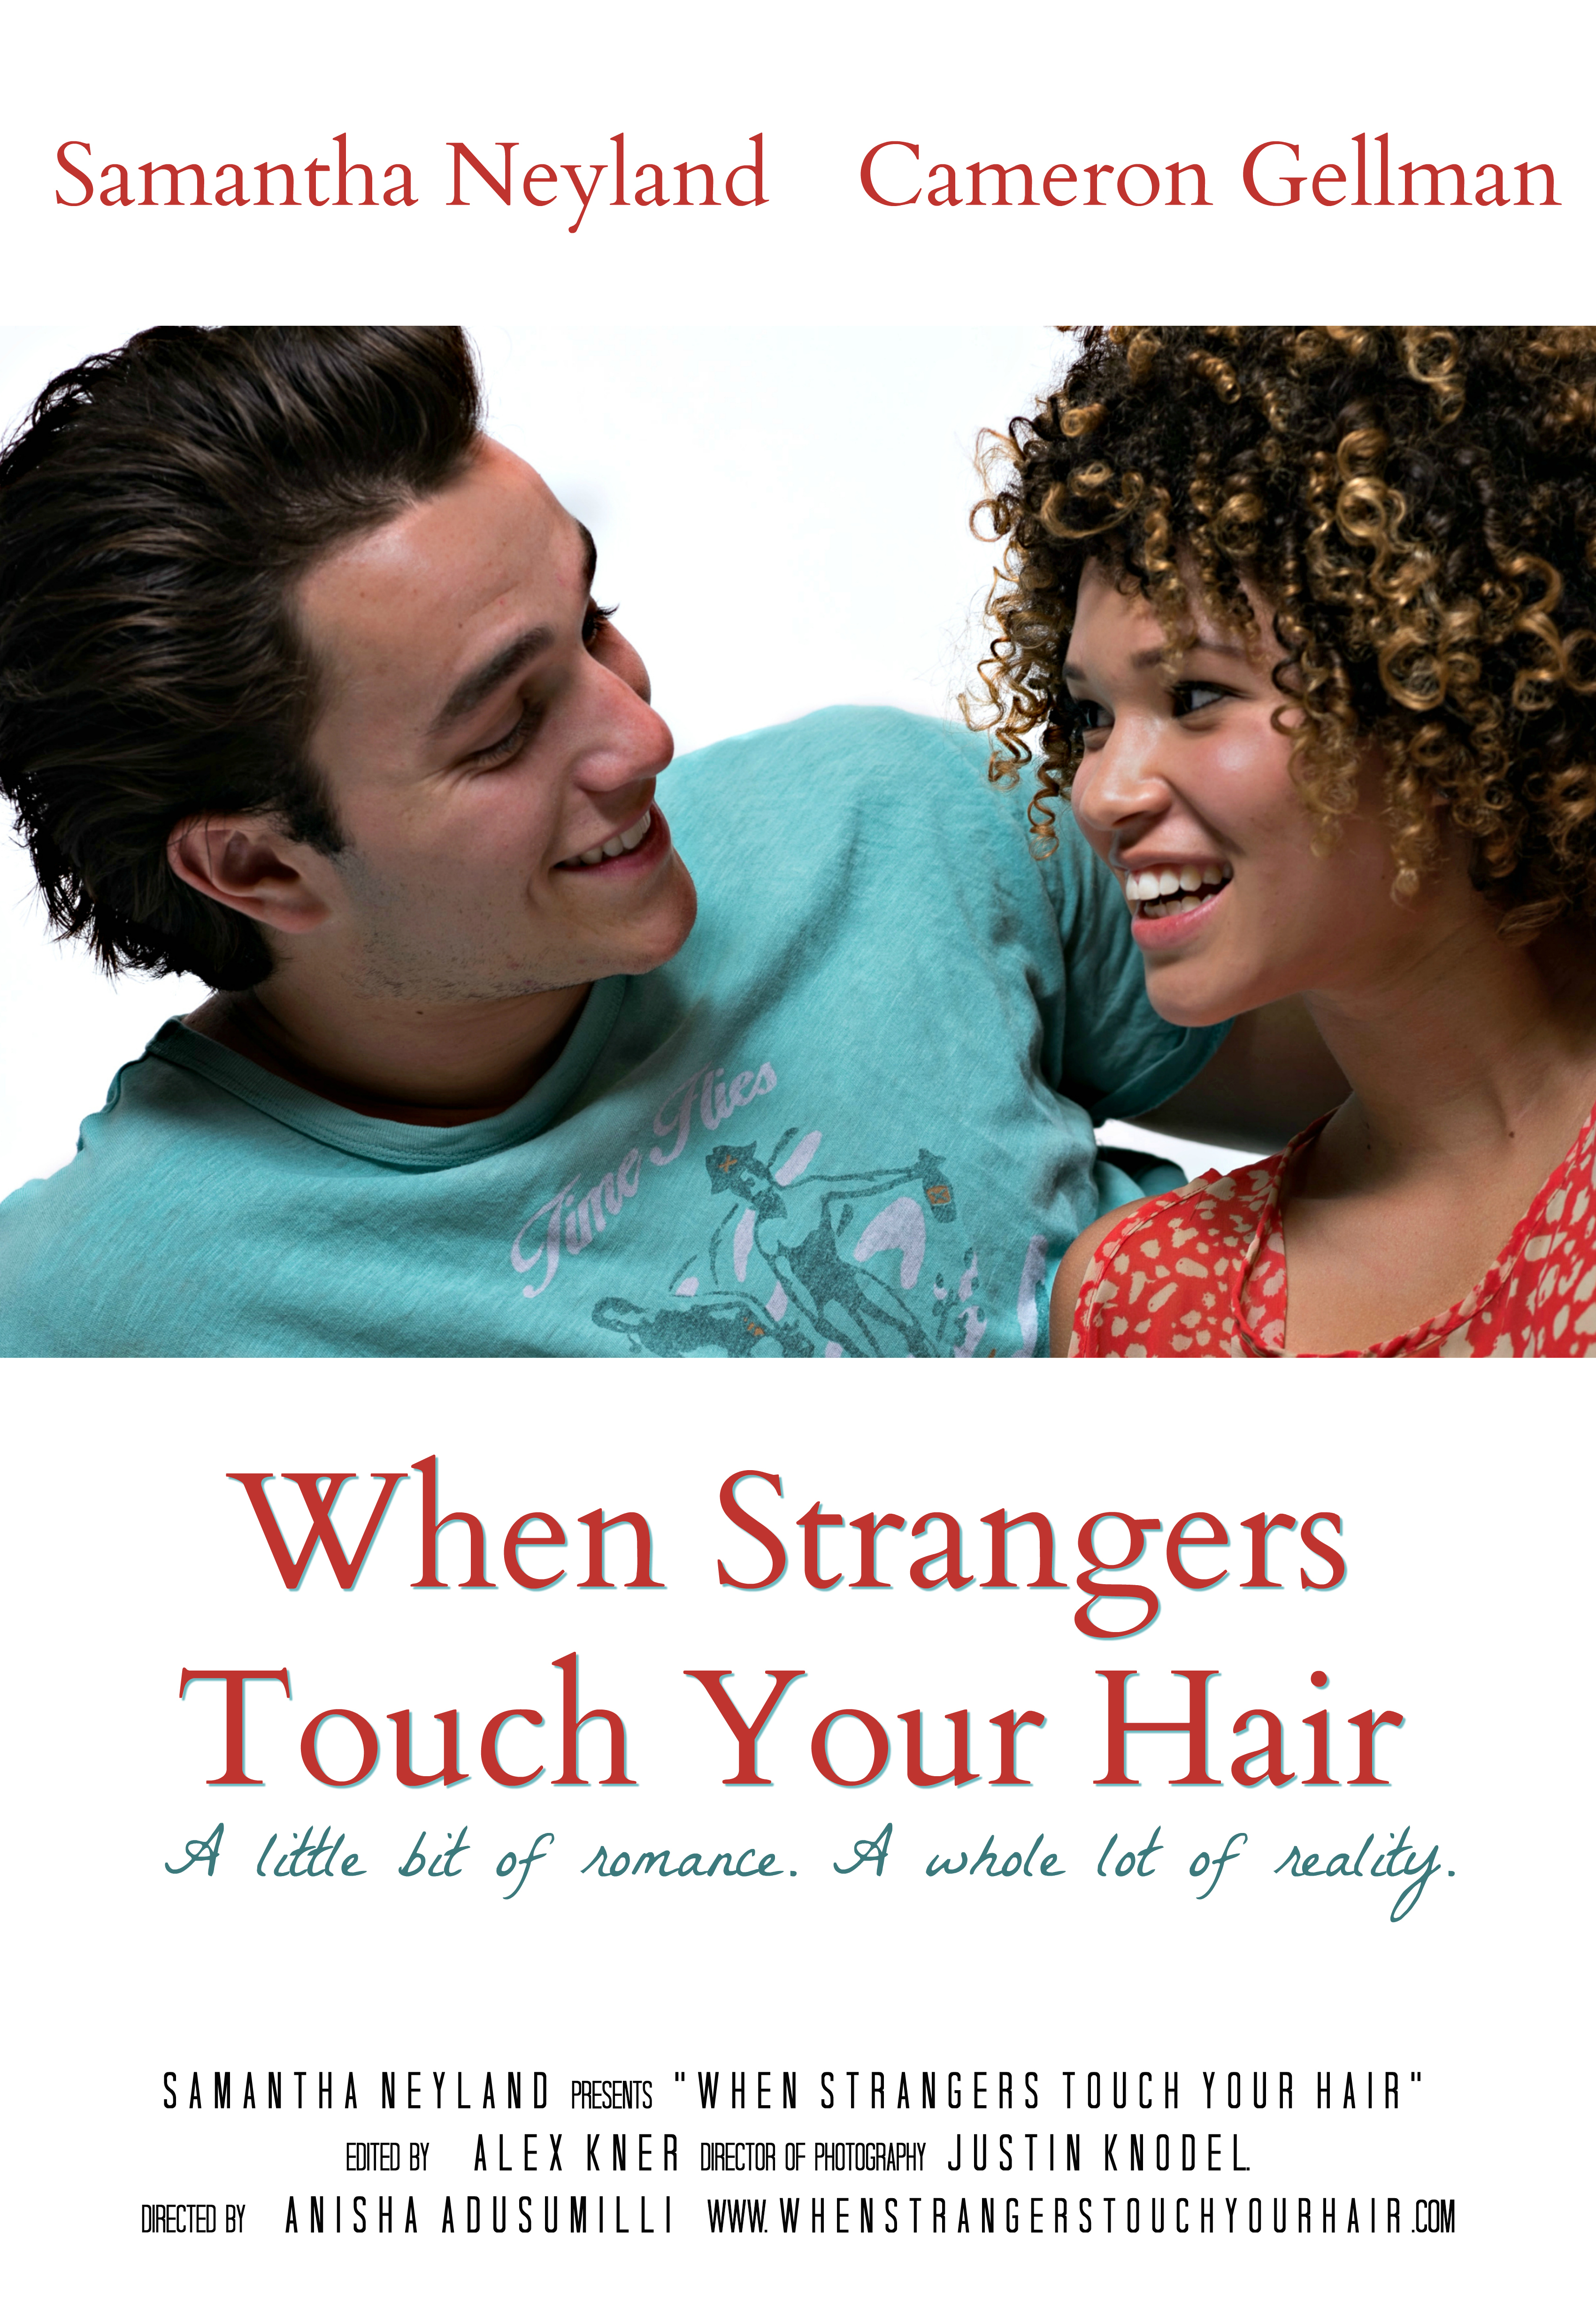 When Strangers Touch Your Hair...